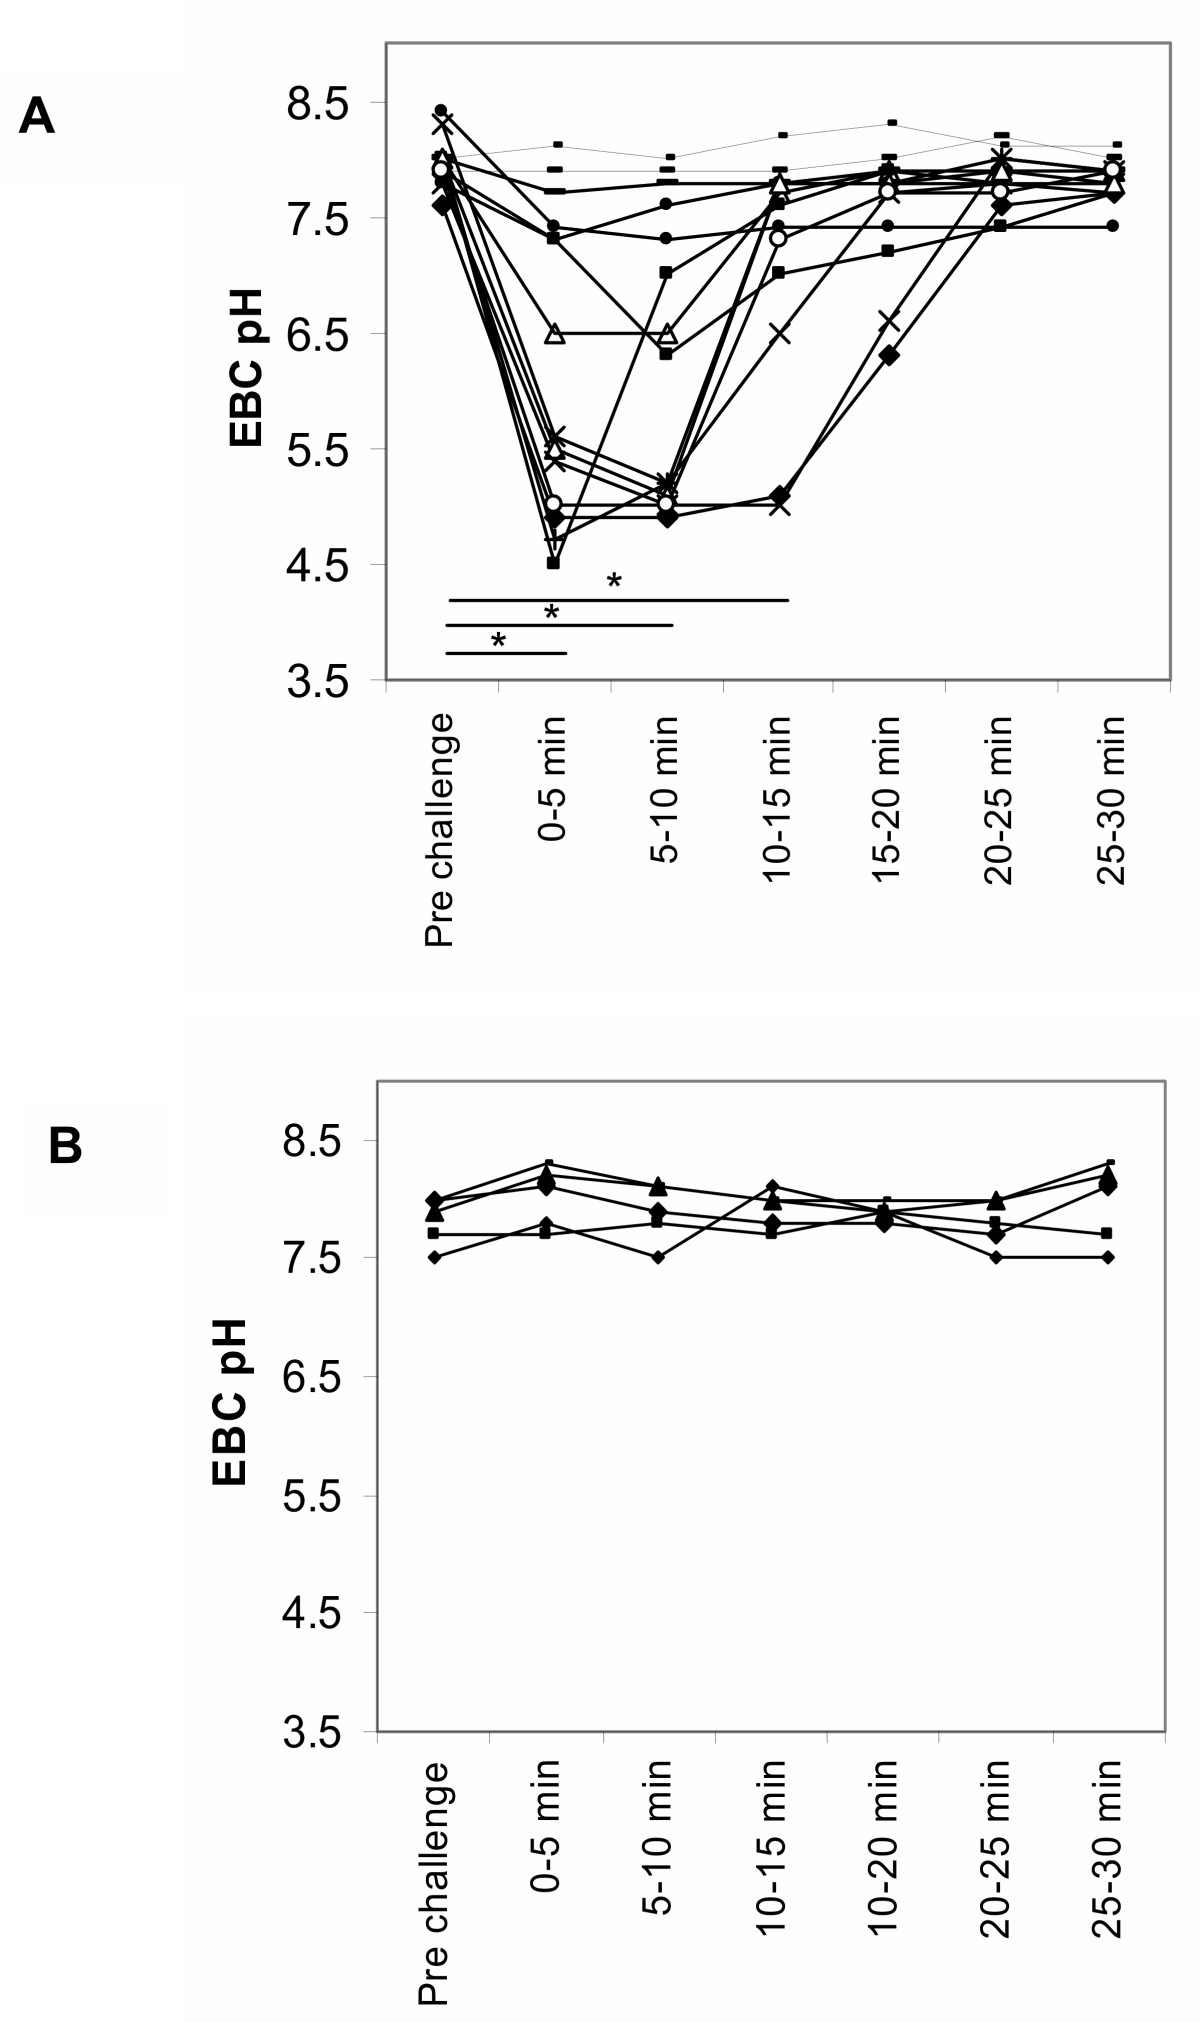 https://static-content.springer.com/image/art%3A10.1186%2F1745-9974-2-3/MediaObjects/12997_2005_Article_14_Fig1_HTML.jpg